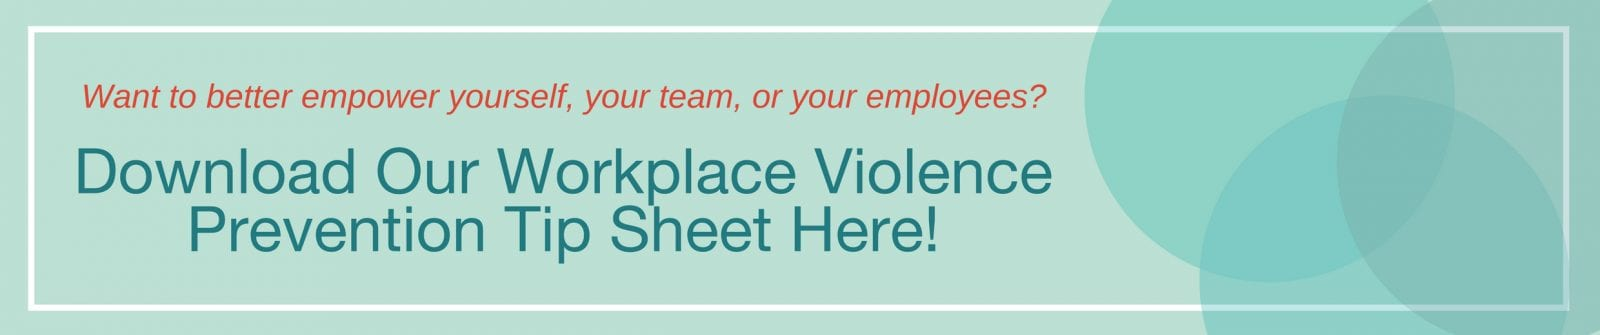 Workplace Violence Tip Sheet